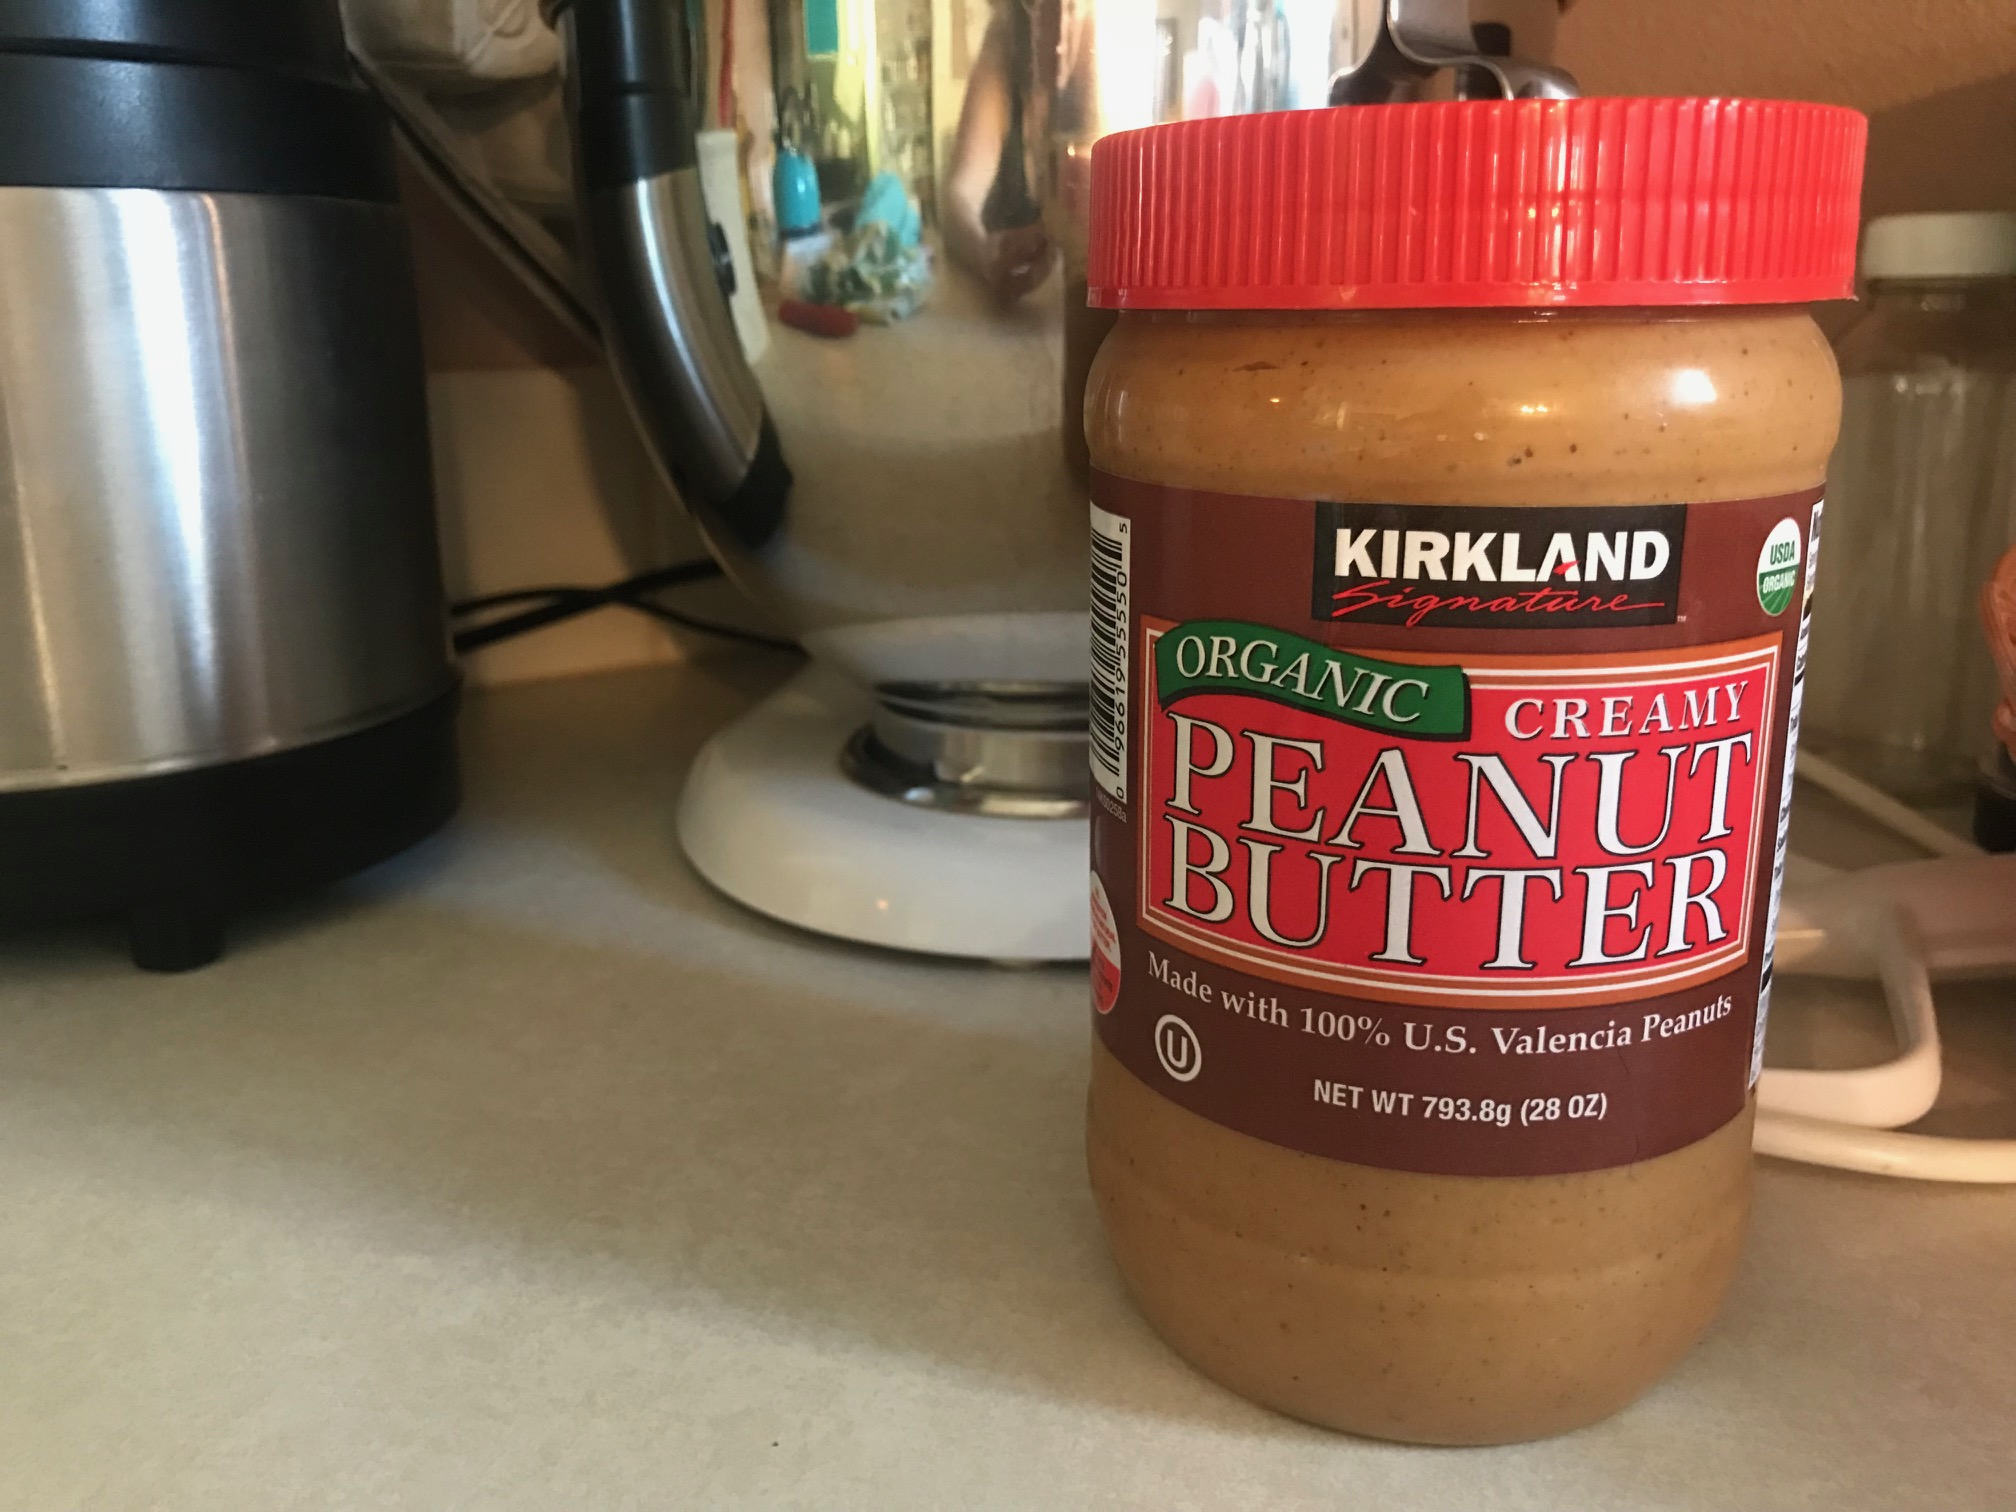 NLR: Please don't ever buy peanut butter packaged in plastic